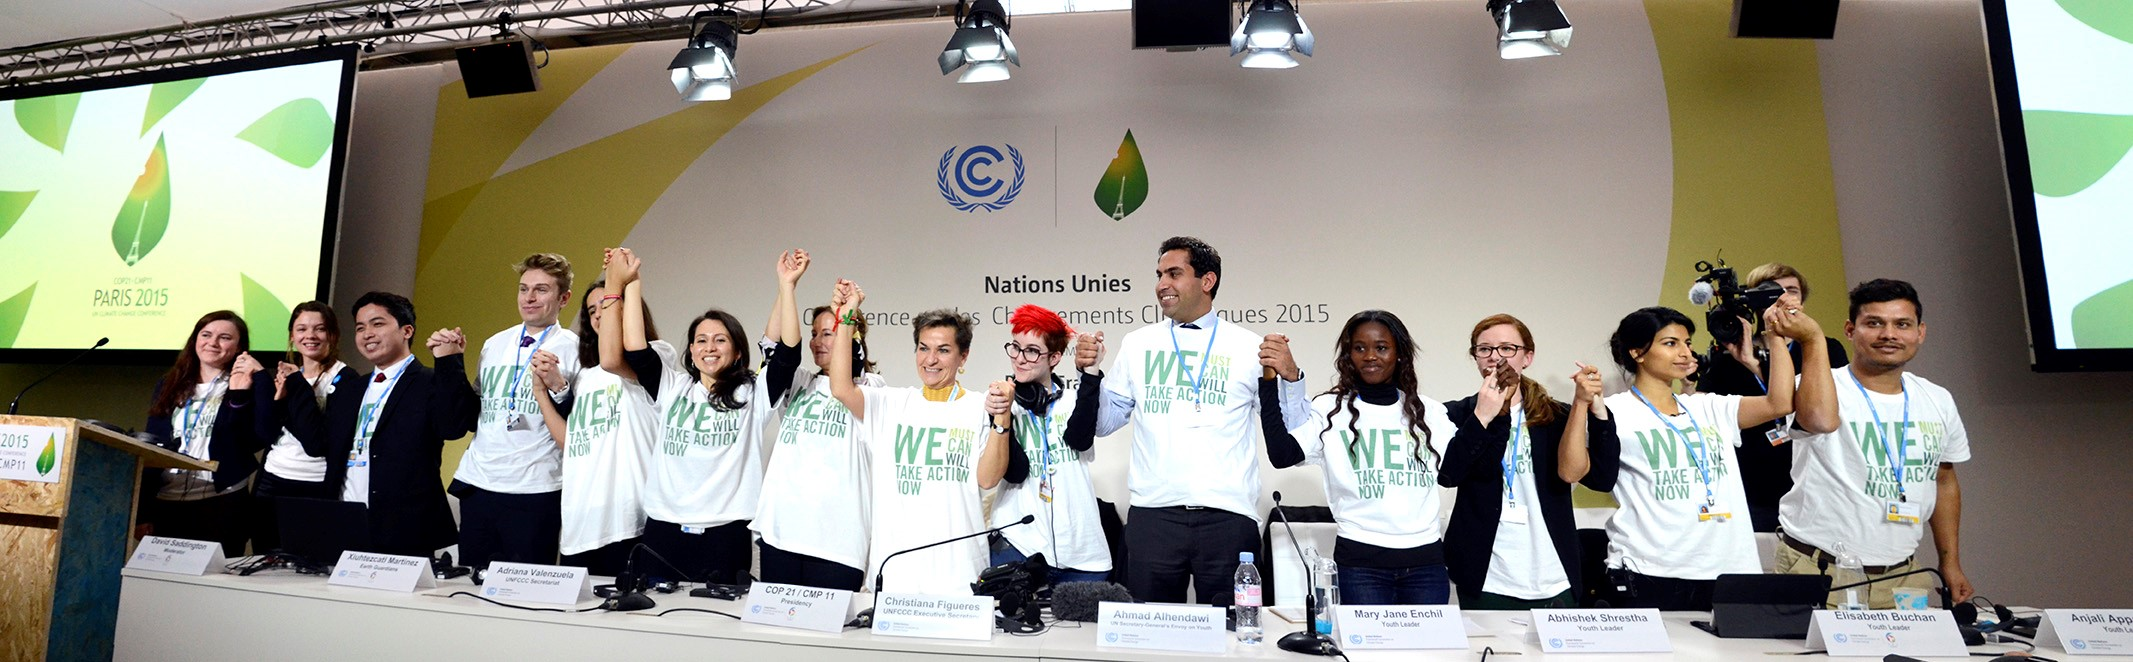 Youth and Future Generations Day at COP21.